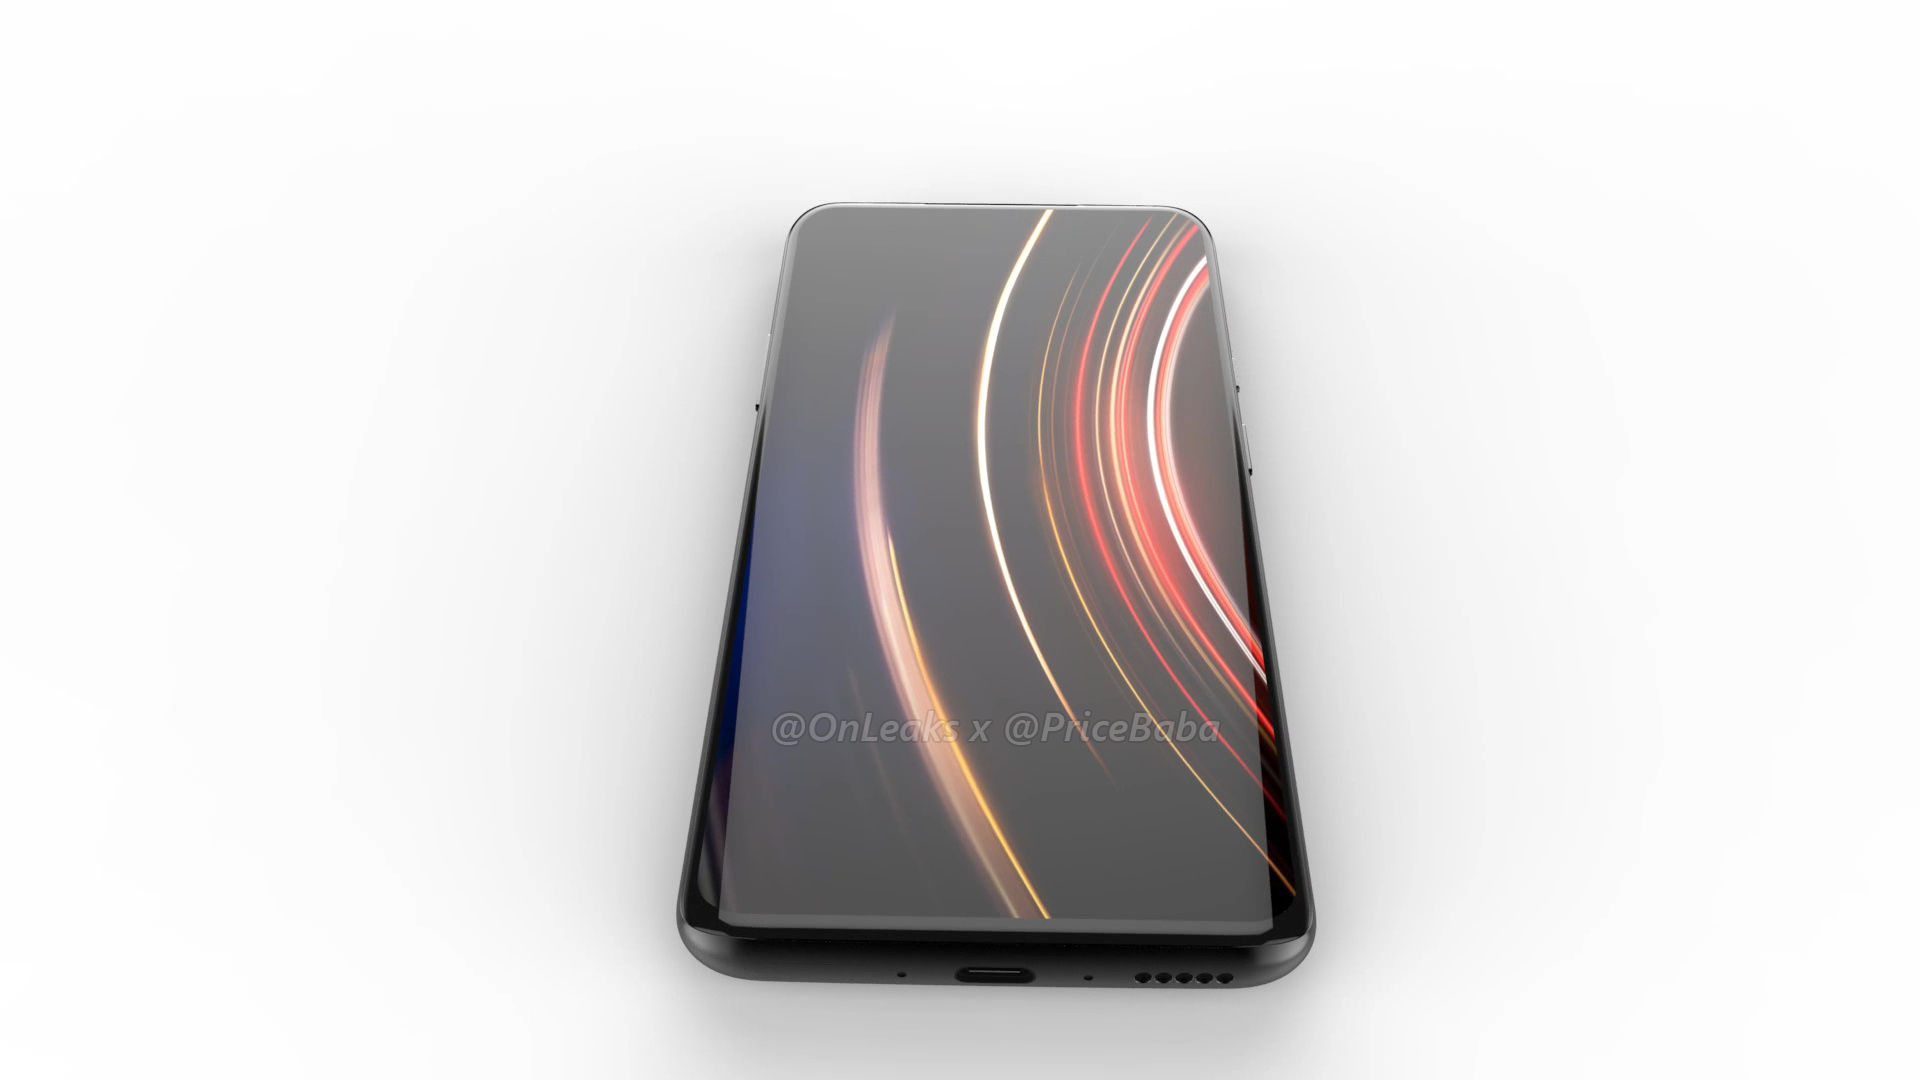 Exclusive: OnePlus 7 Pro renders and 360-degree video